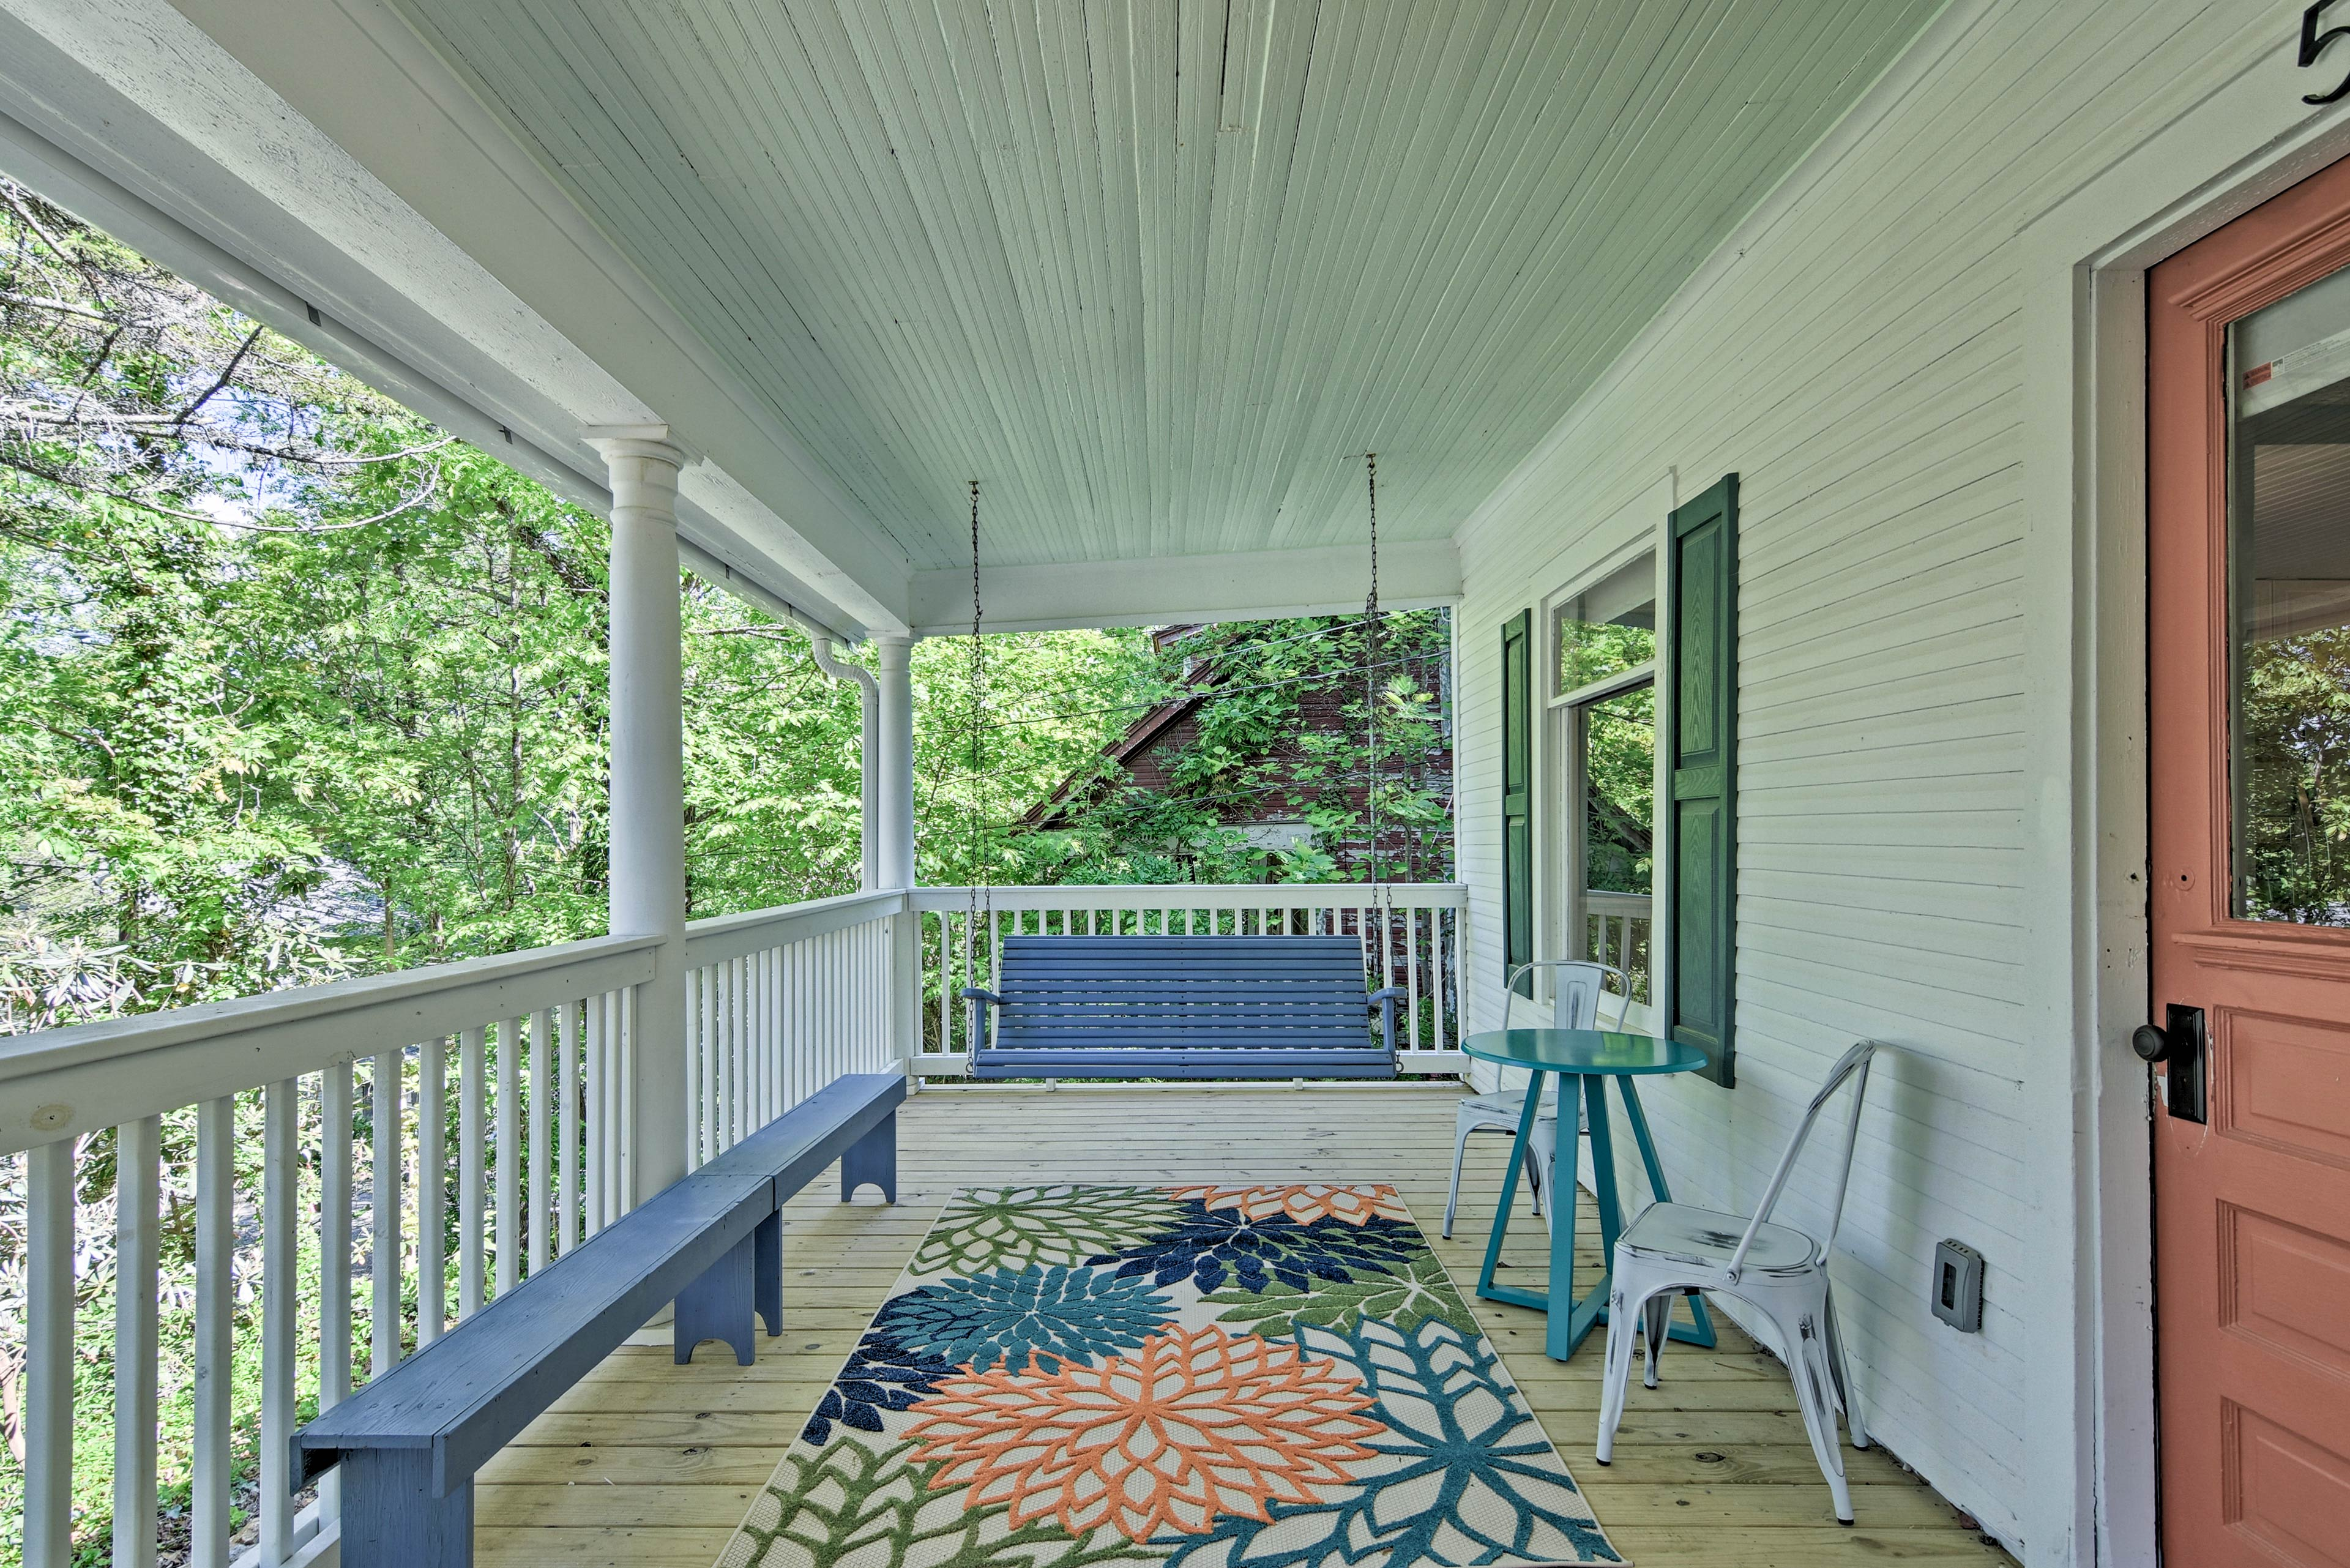 Sip coffee or tea as you read a book on the porch swing.